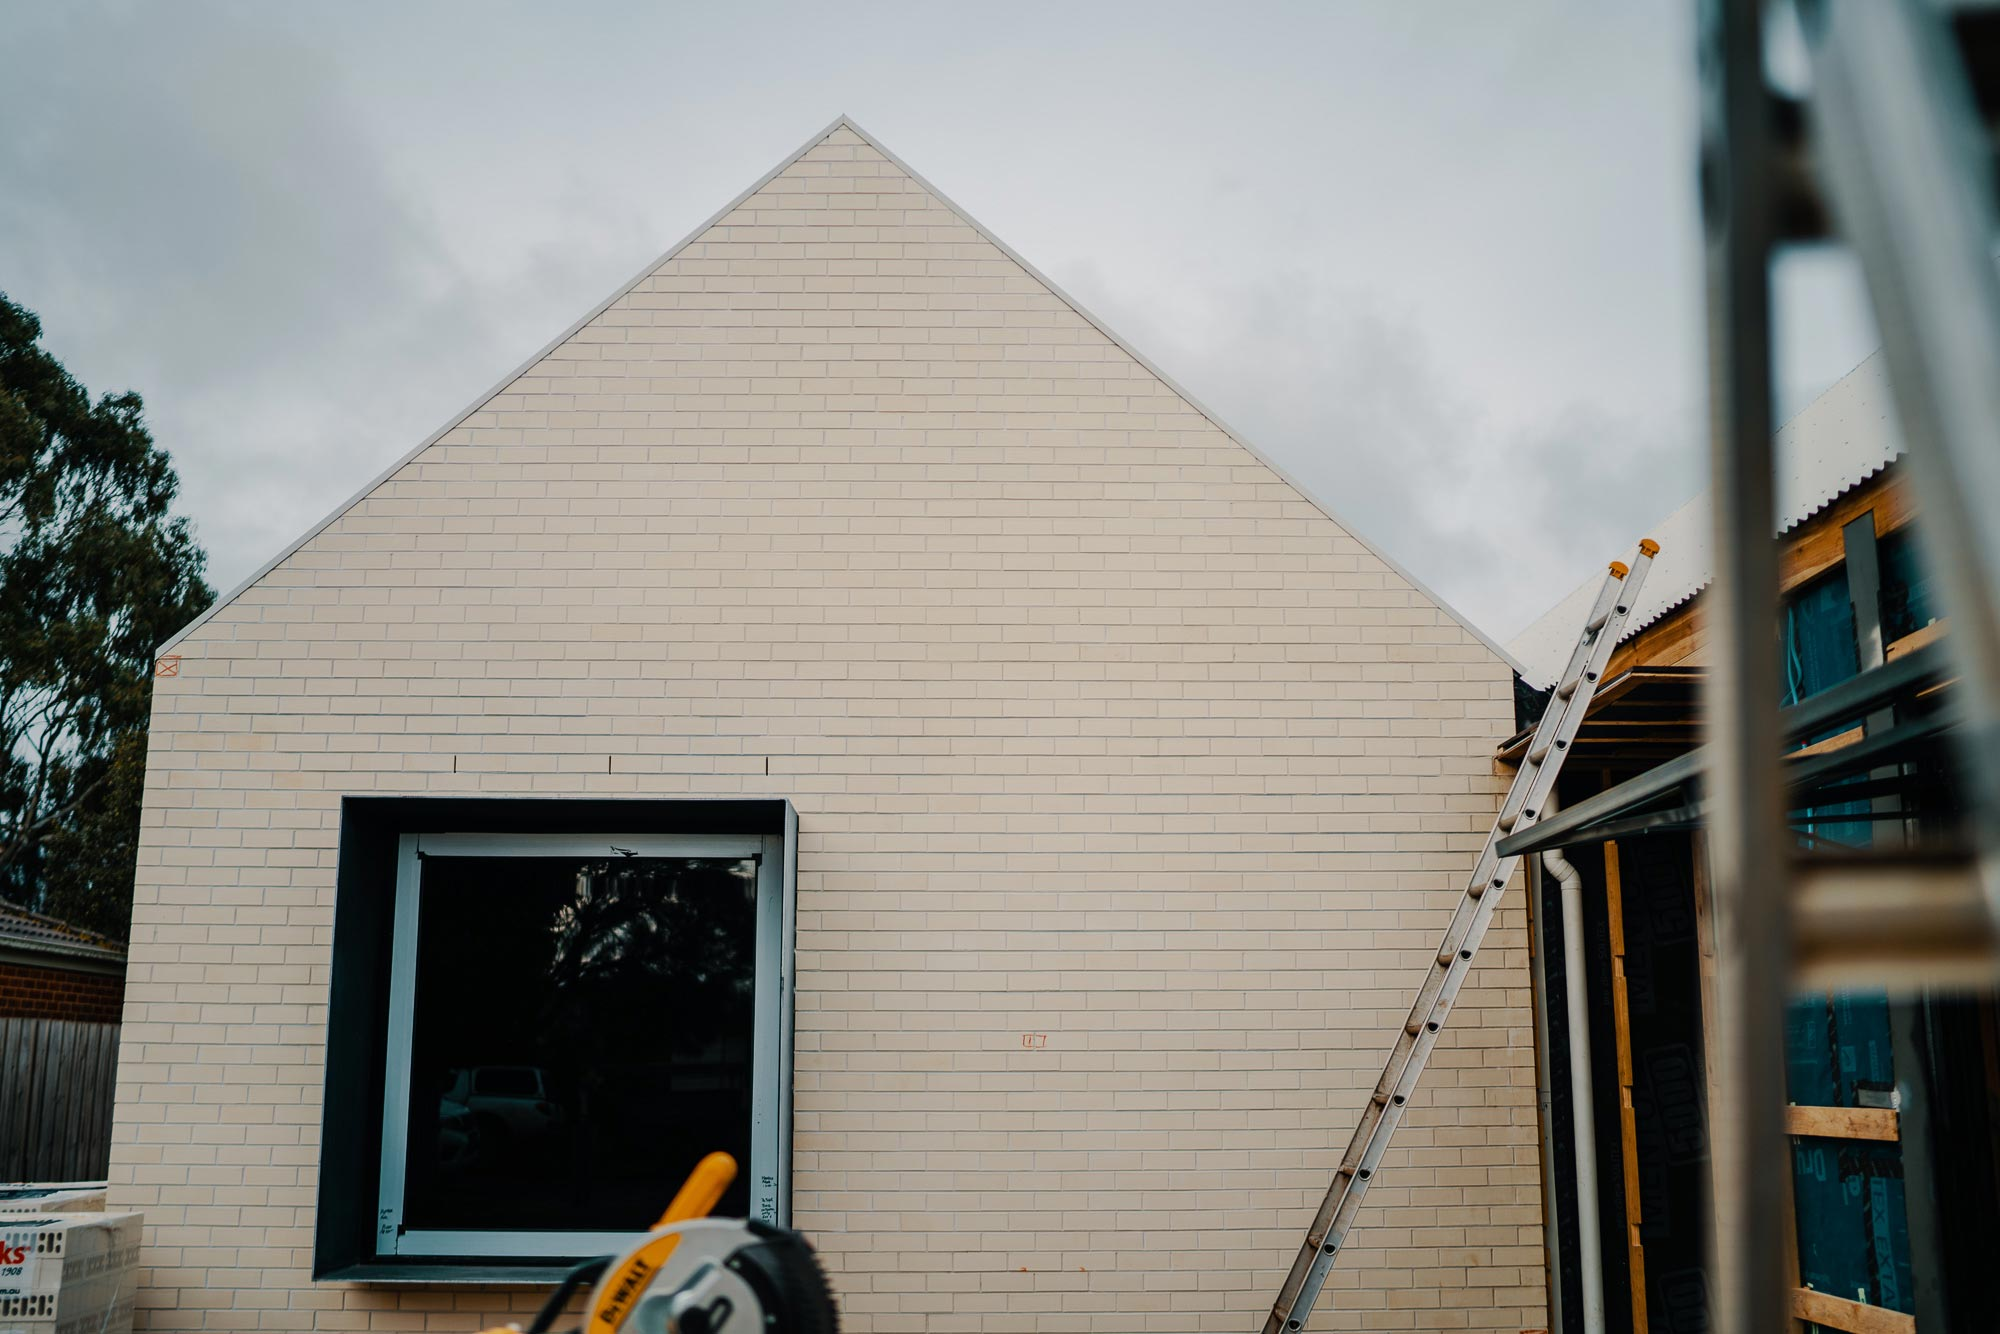 Granted Constructions - Melbourne - Building Process - Brick Peaked Roof and Ladders